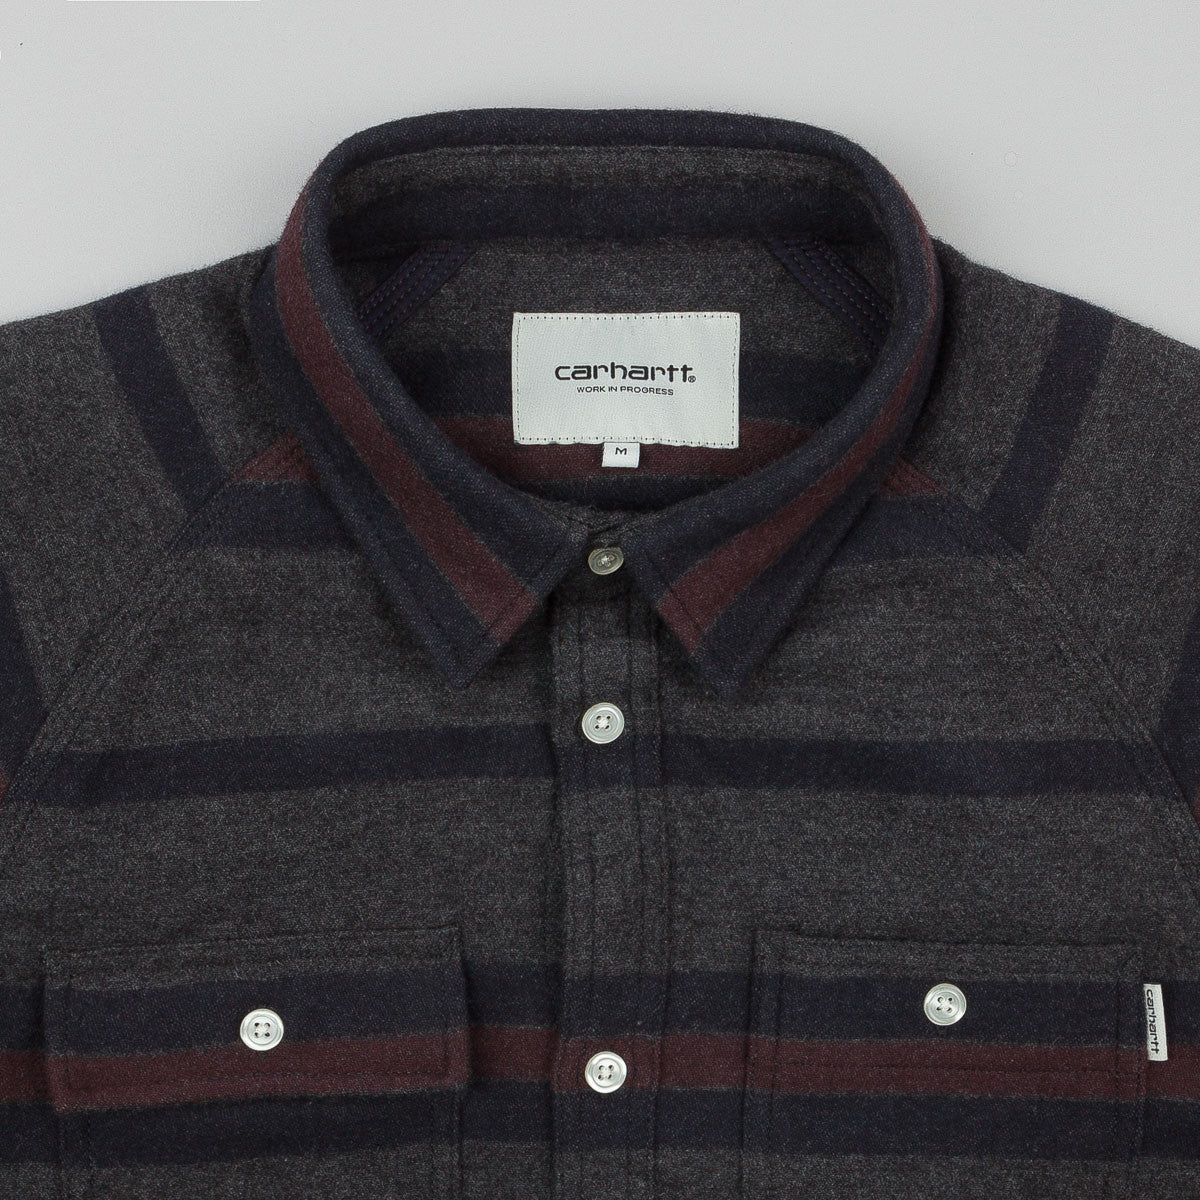 Carhartt Blanket Flannel Long Sleeve Shirt - Dark Navy